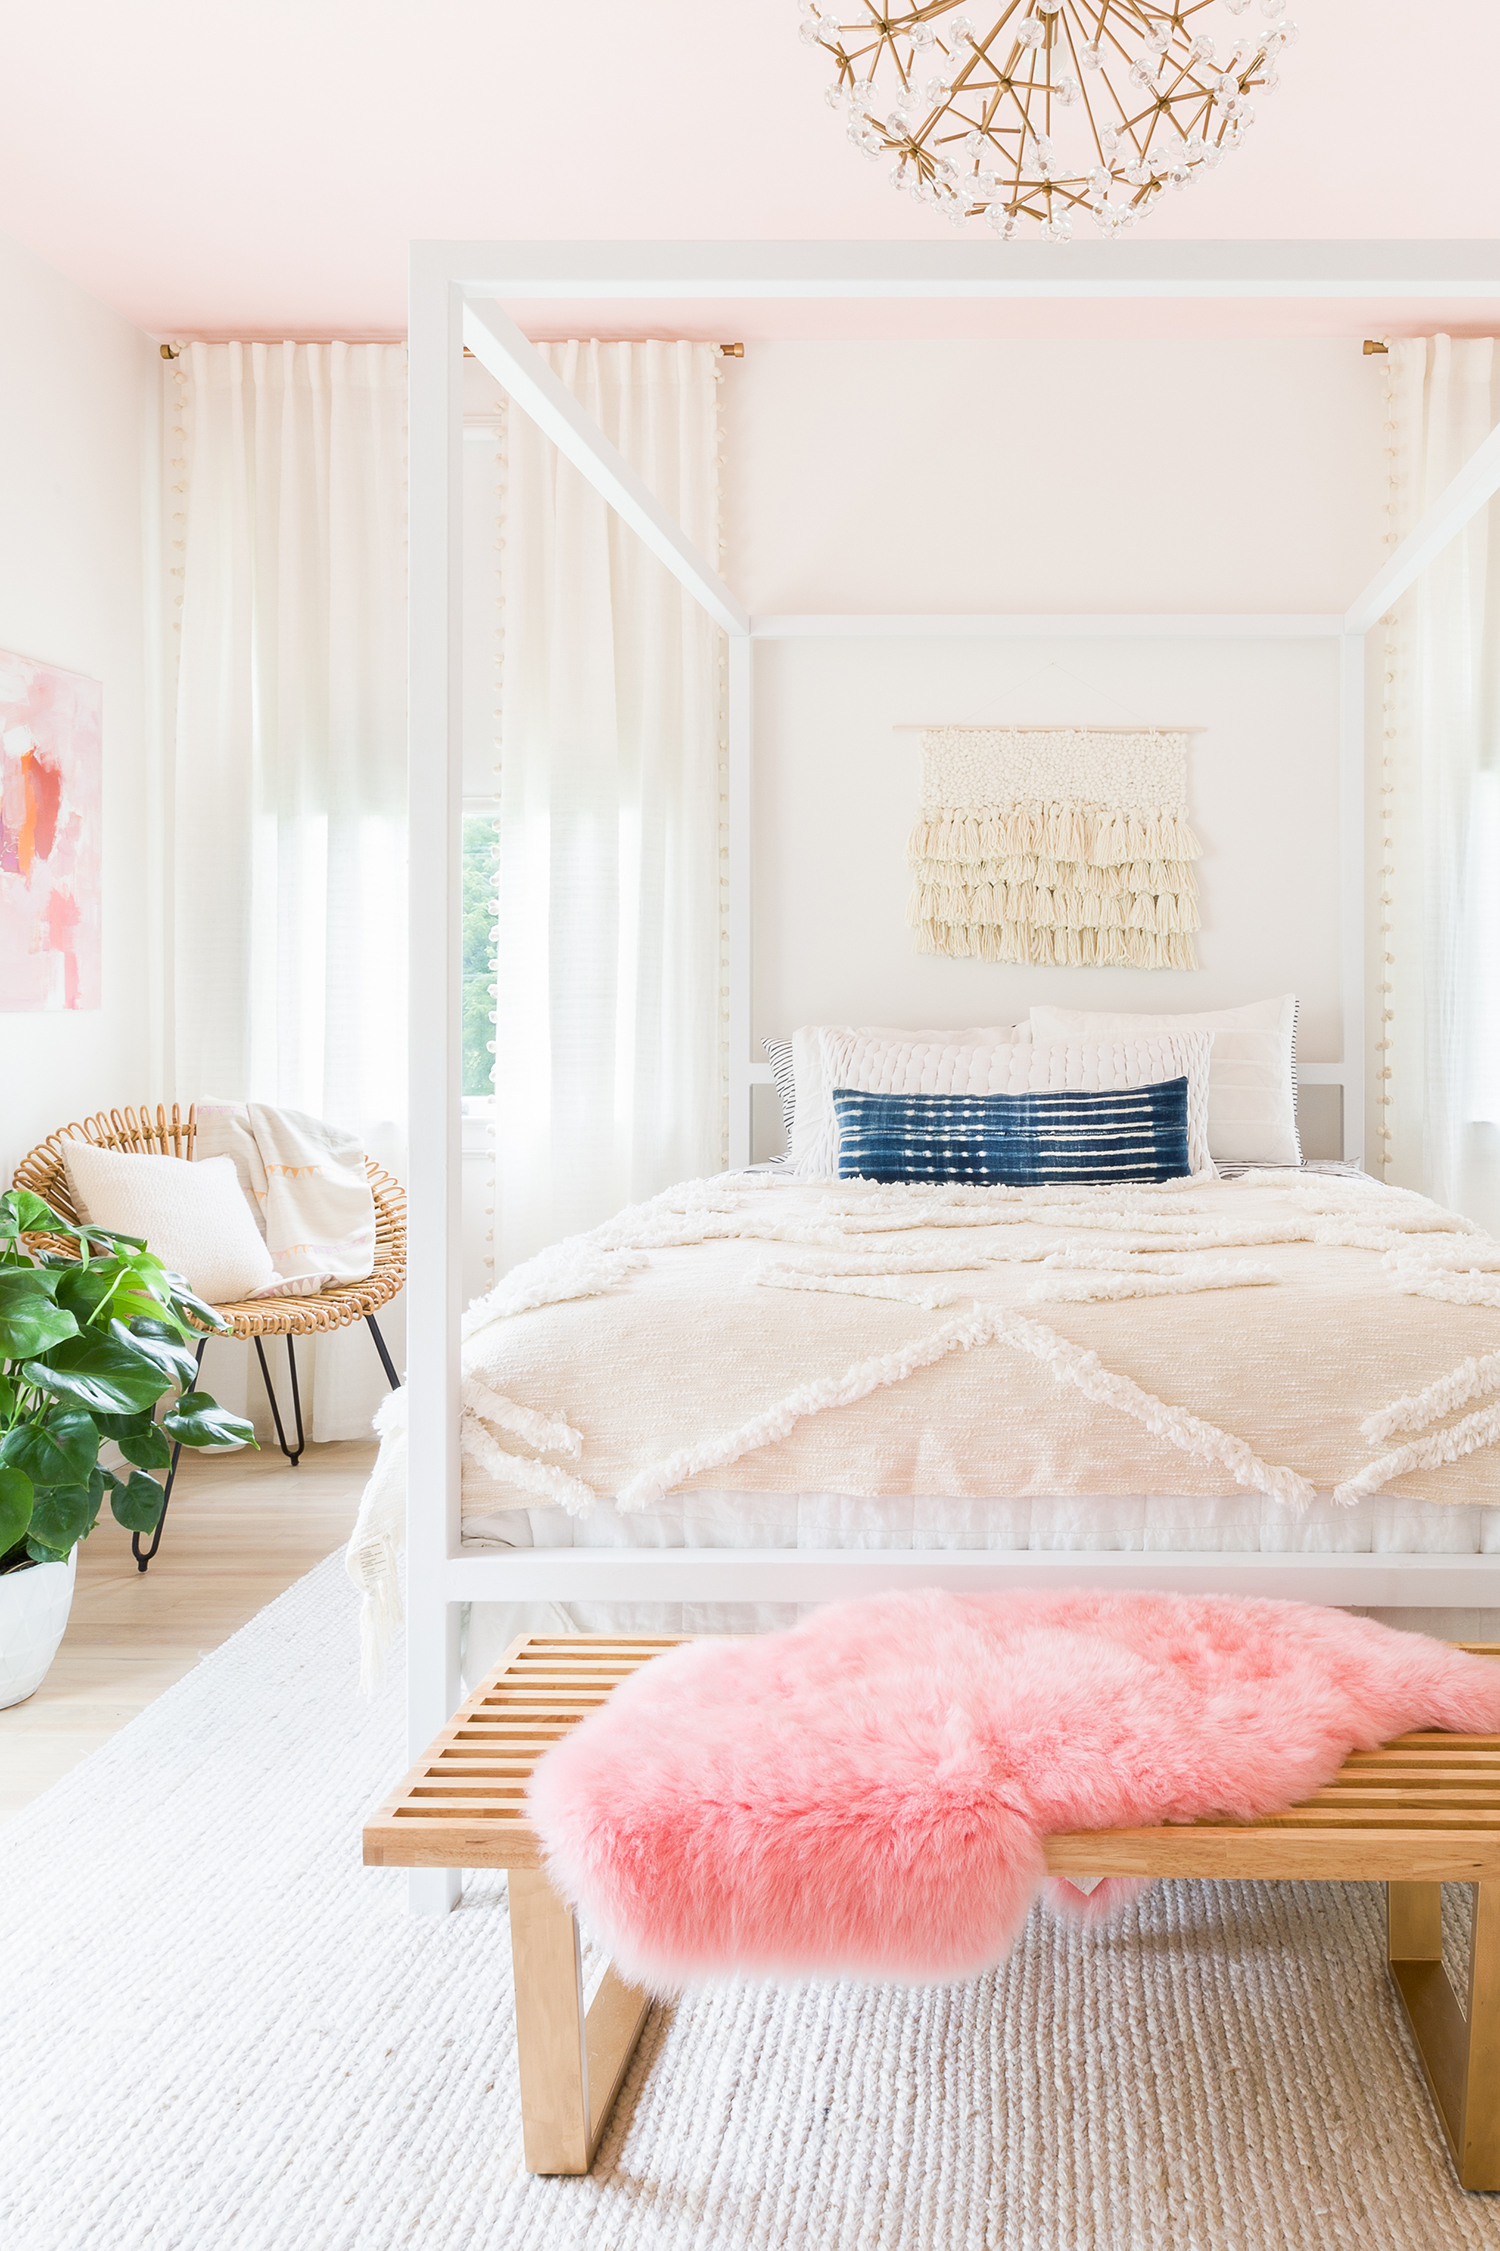 5 Beautiful Bedrooms on a Budget! Budget decorating ideas ... on Girls Beautiful Room  id=59268